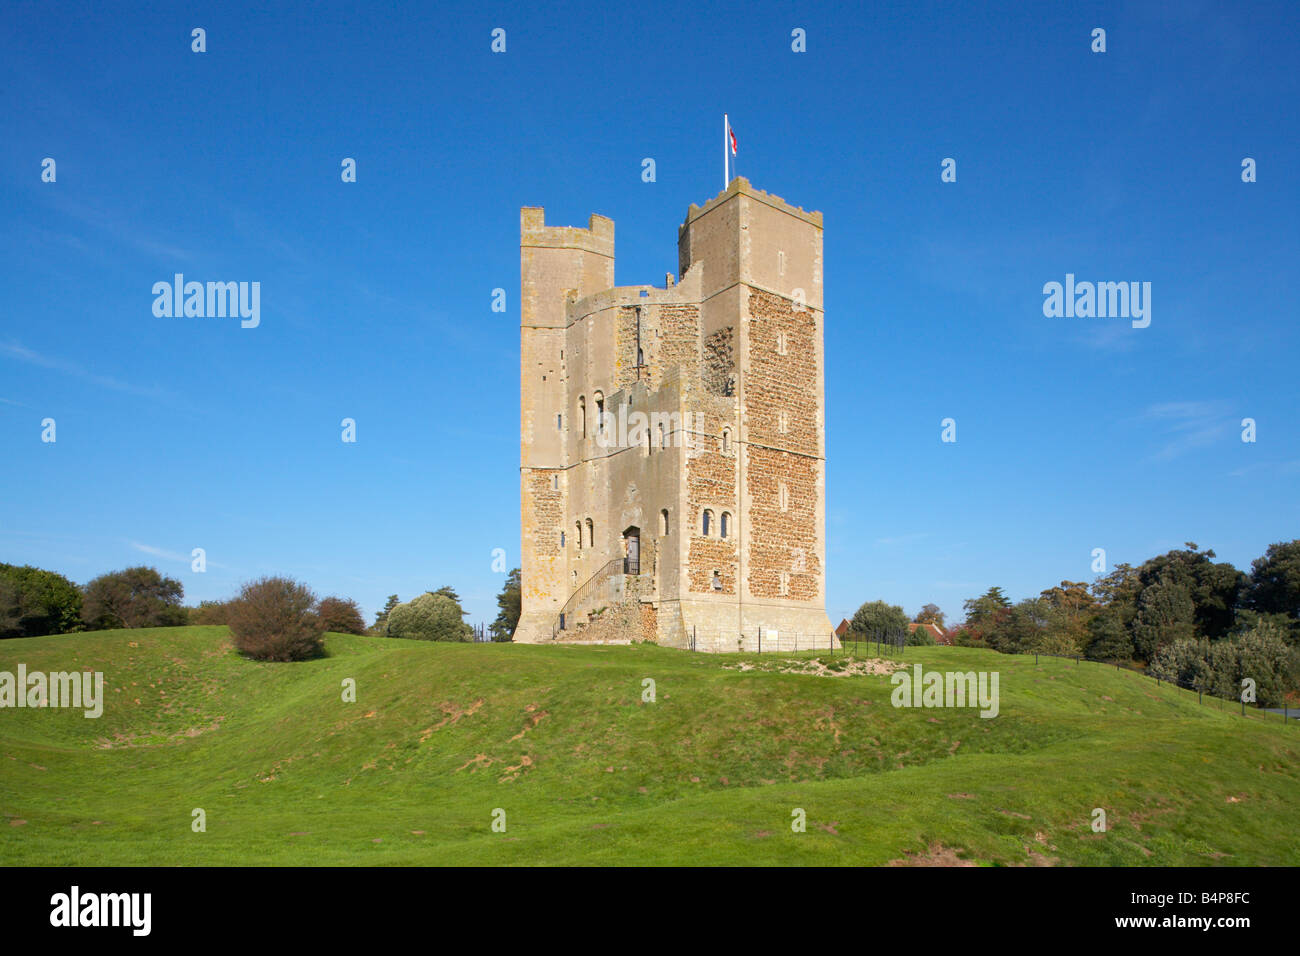 Great Britain United Kingdom England Suffolk Orford Castle 12th Century 1165 - 1173 - Stock Image